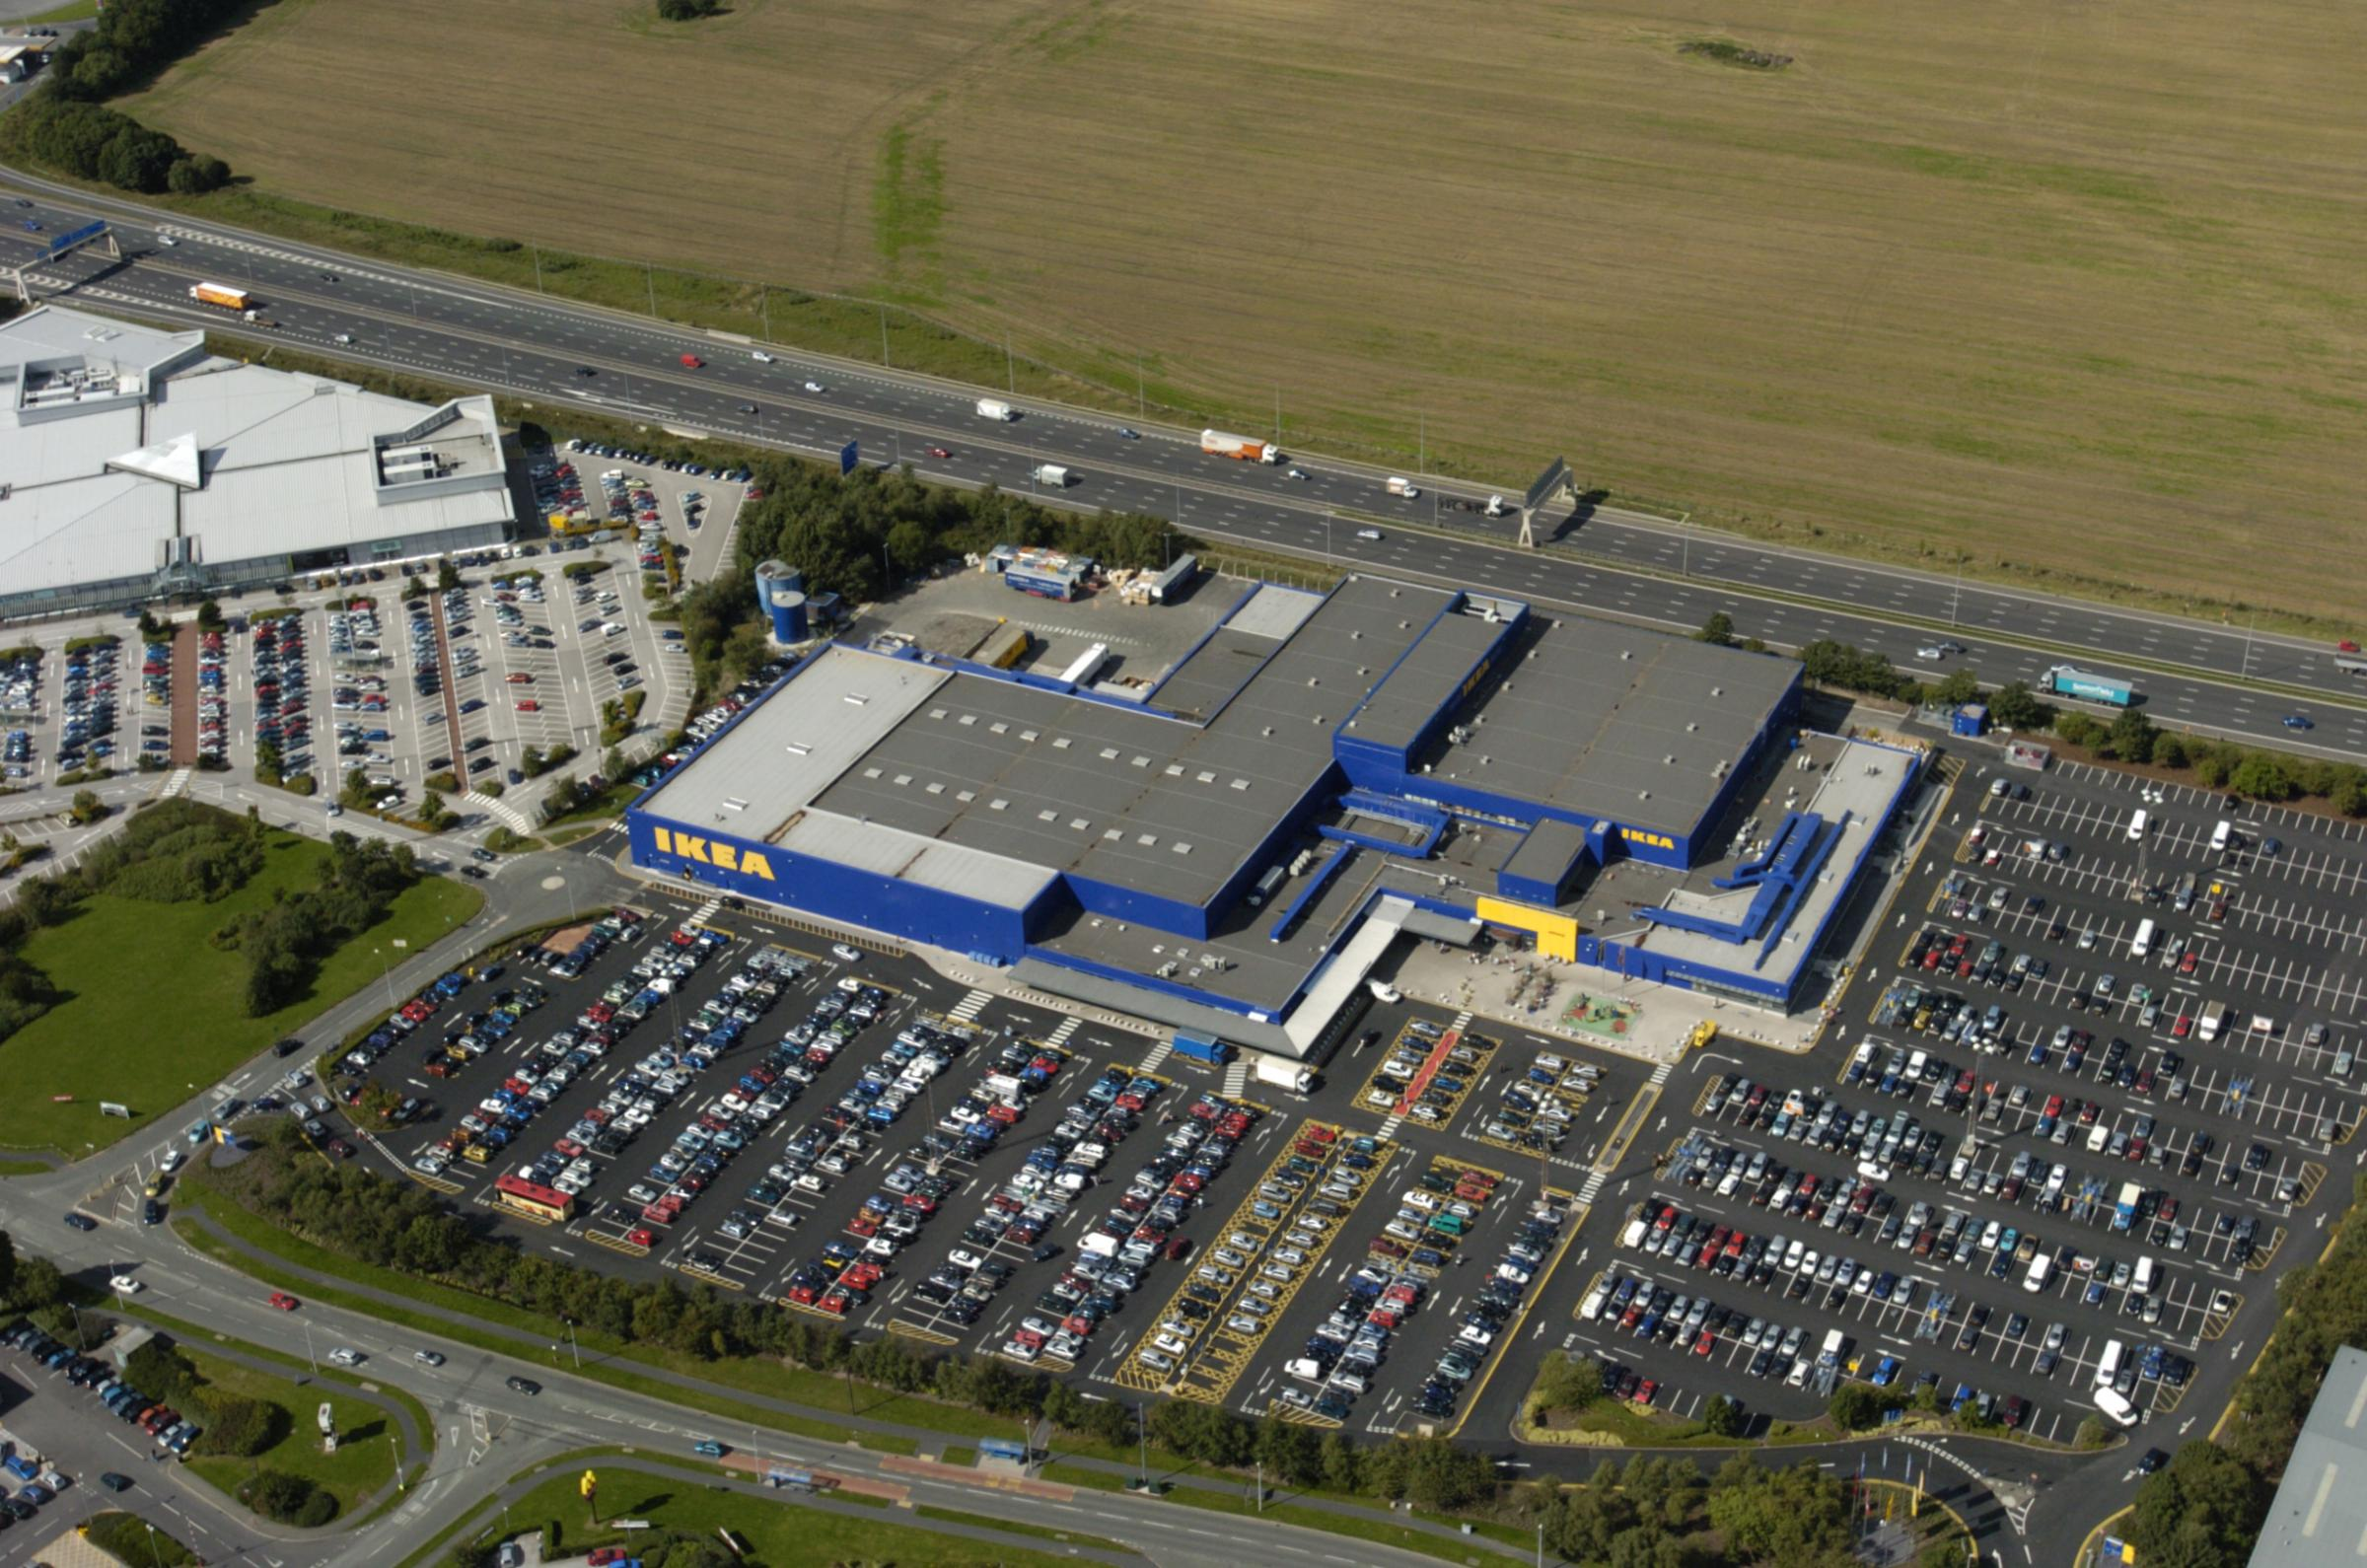 Ikea Warrington was evacuated this morning following a gas leak.